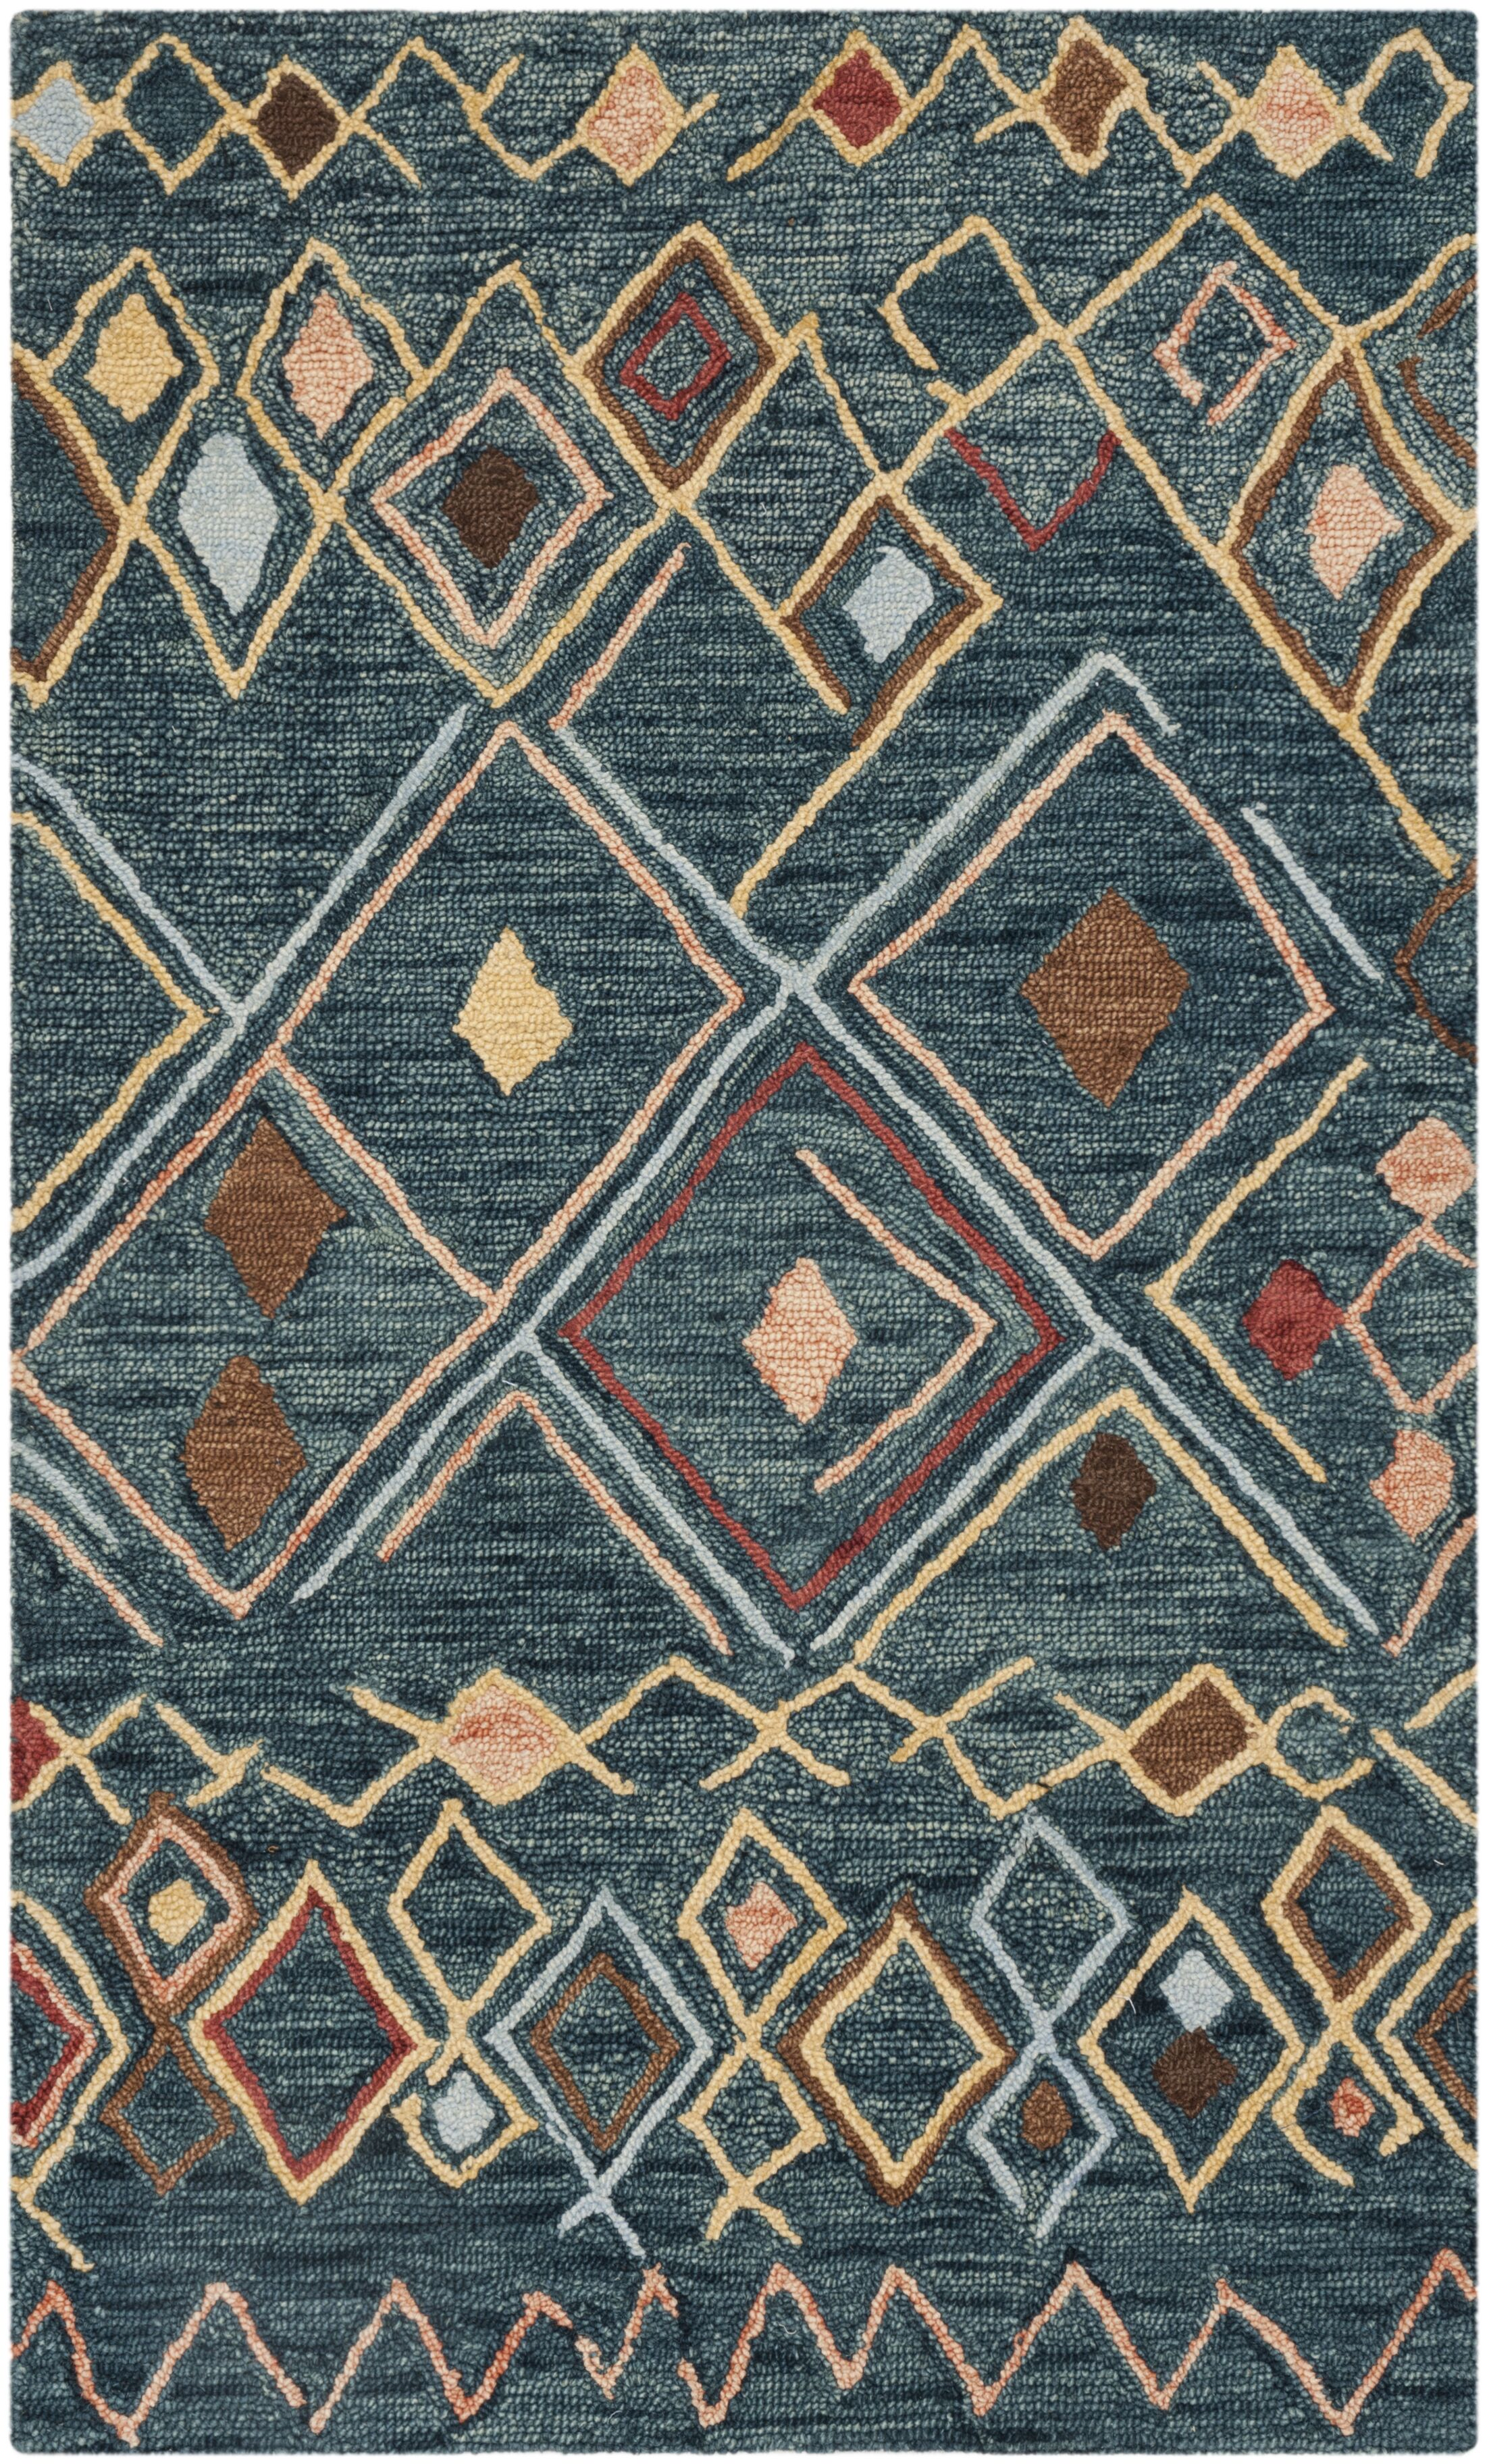 Talmo Hand Hooked Wool Dark Blue/Yellow Area Rug Rug Size: Rectangle 5' x 8'